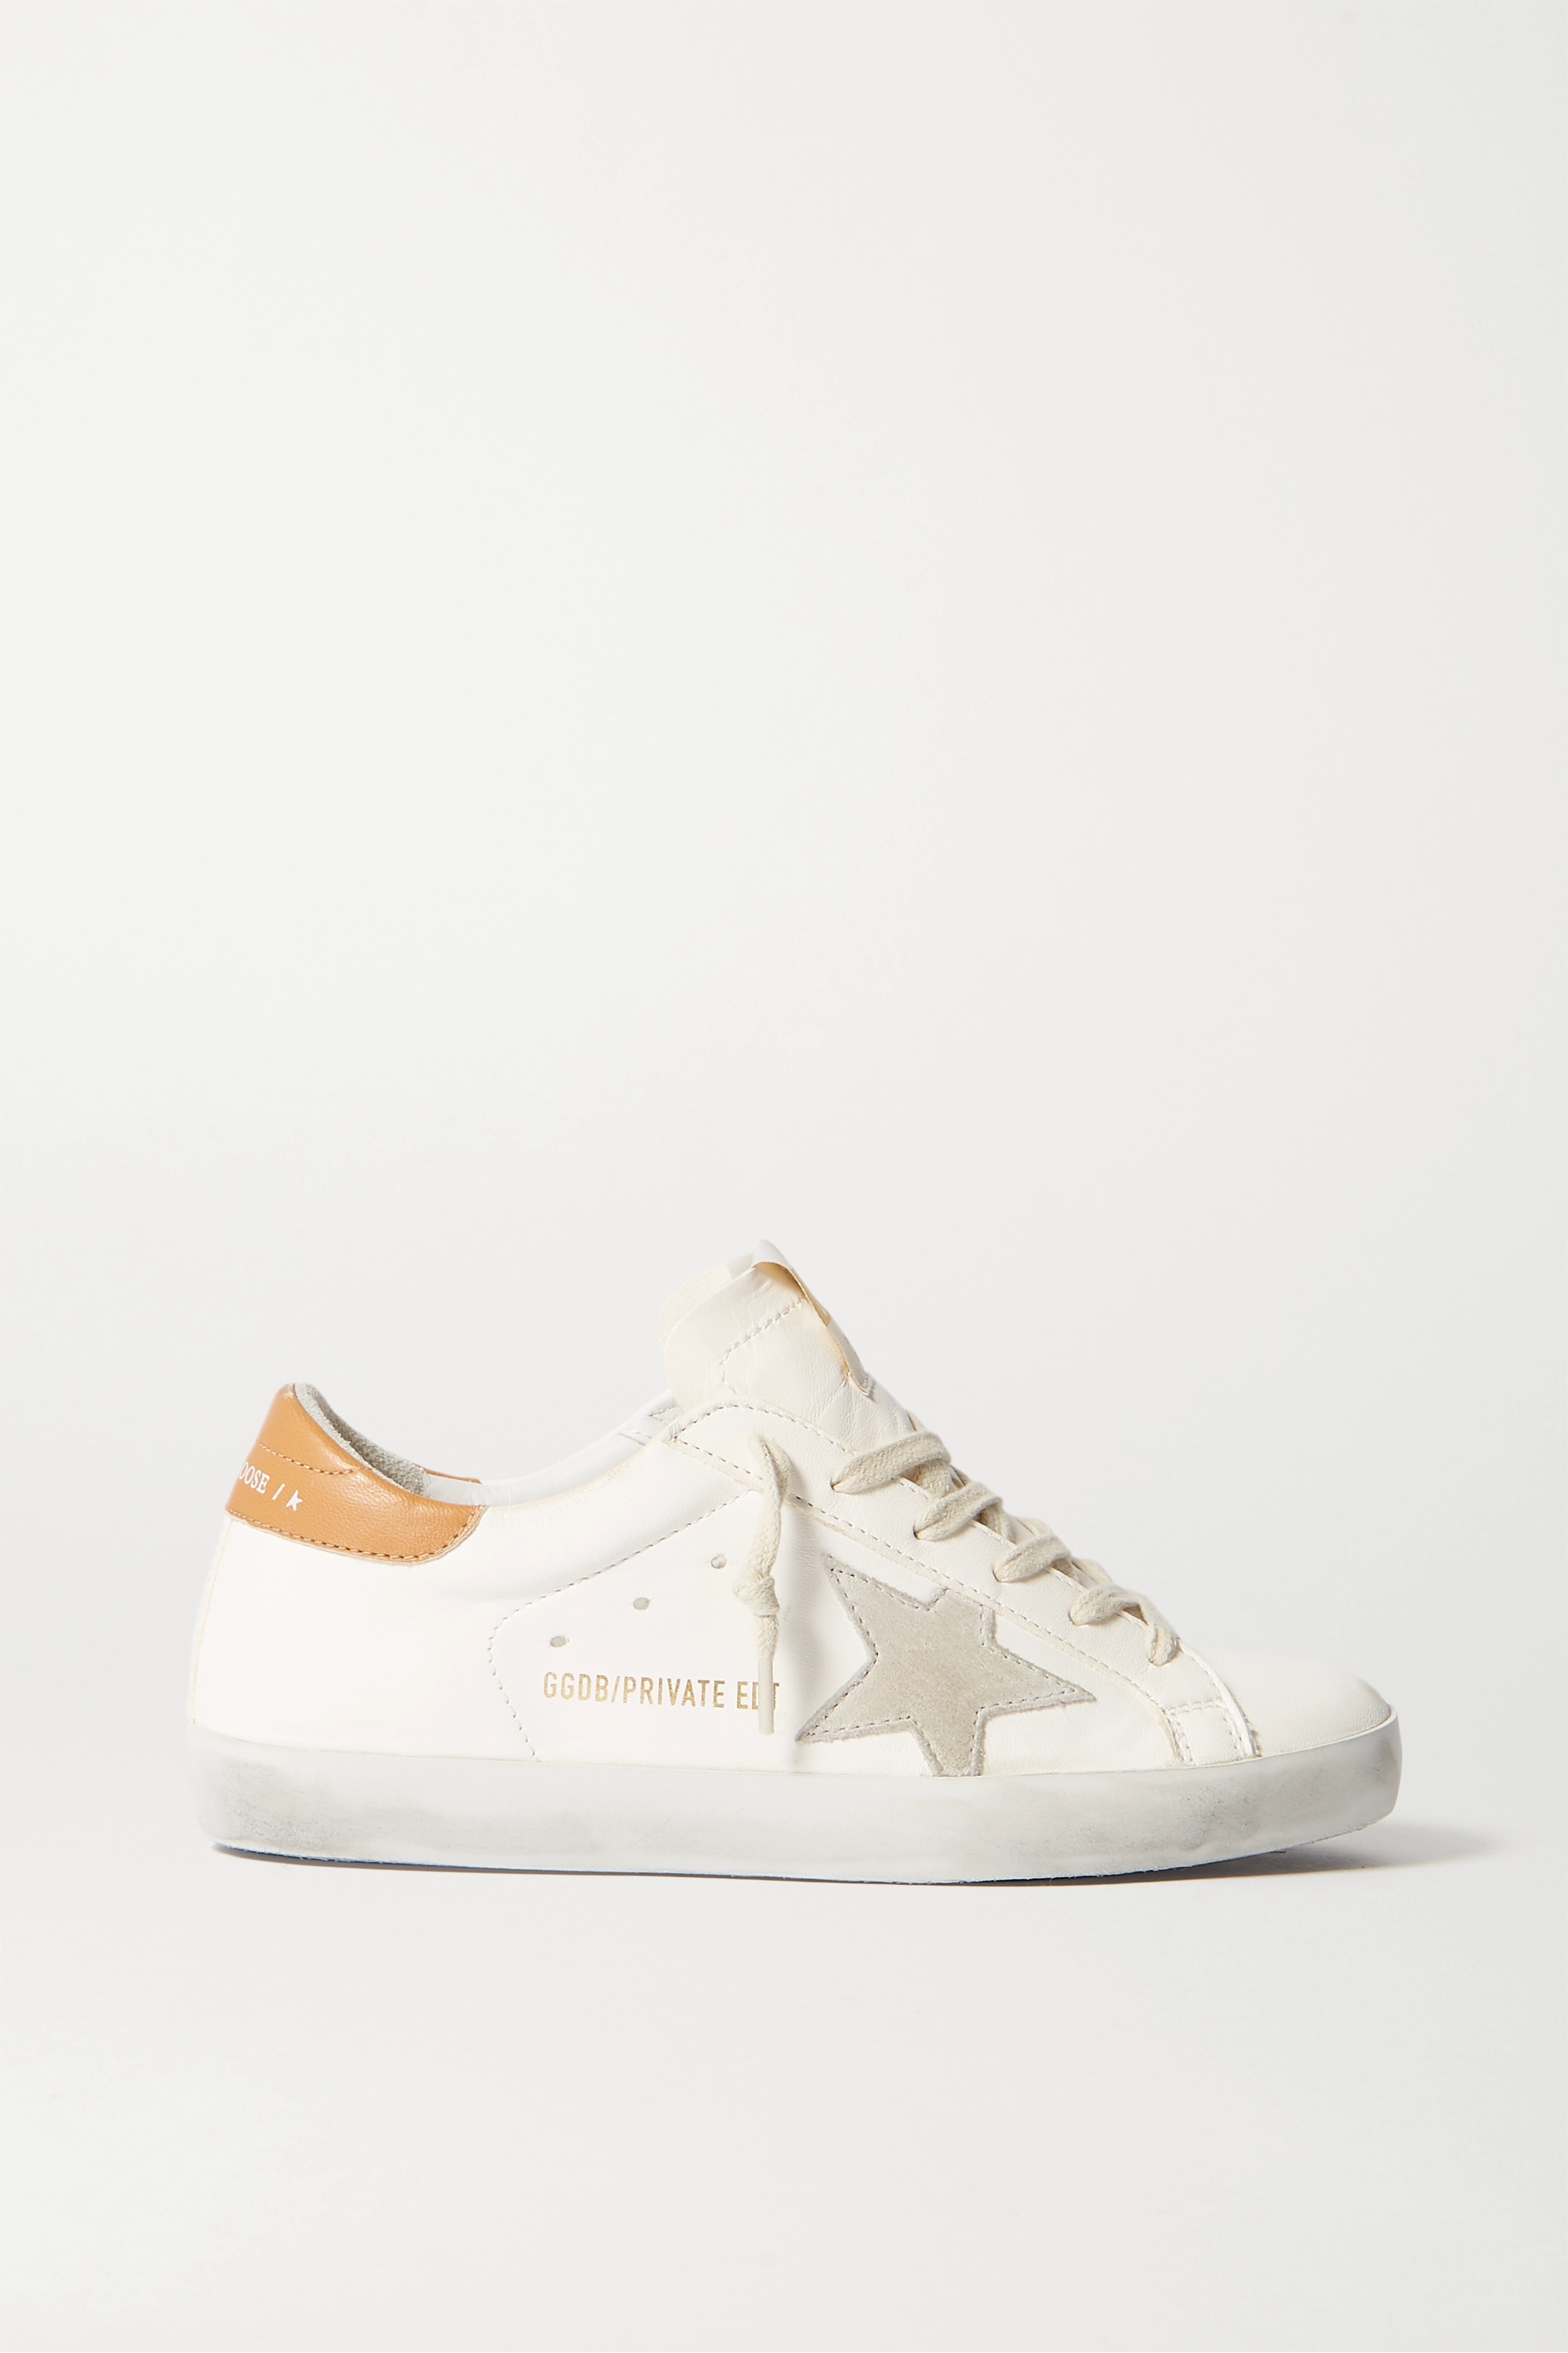 Off-white Superstar distressed leather